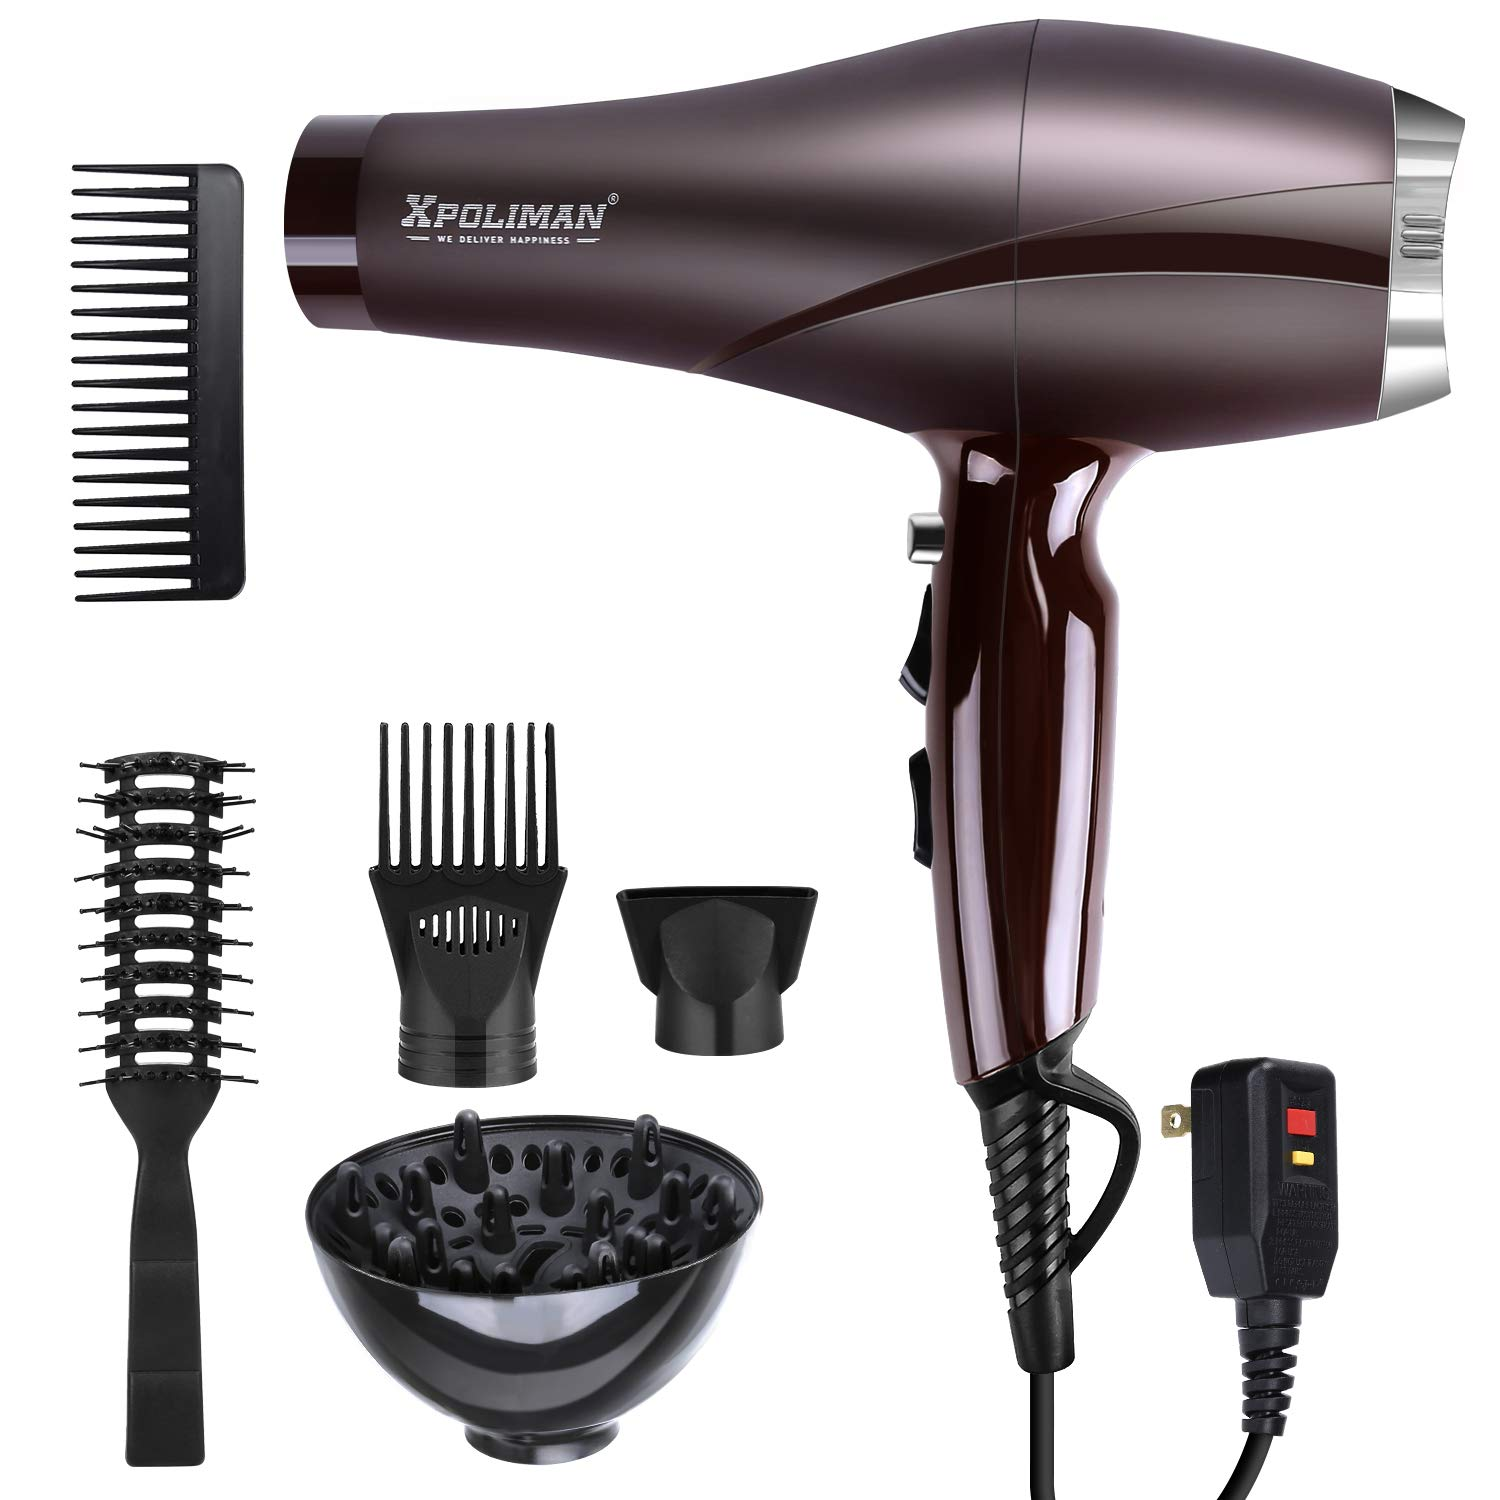 2000 Watt Hair Dryers, Xpoliman Professional Salon Hair Dryer with AC Motor, Negative Ionic Blow Dryer with Diffuser Concentrator Comb, 2 Speed 3 Heat Settings,Low Noise Long Life style-Purple